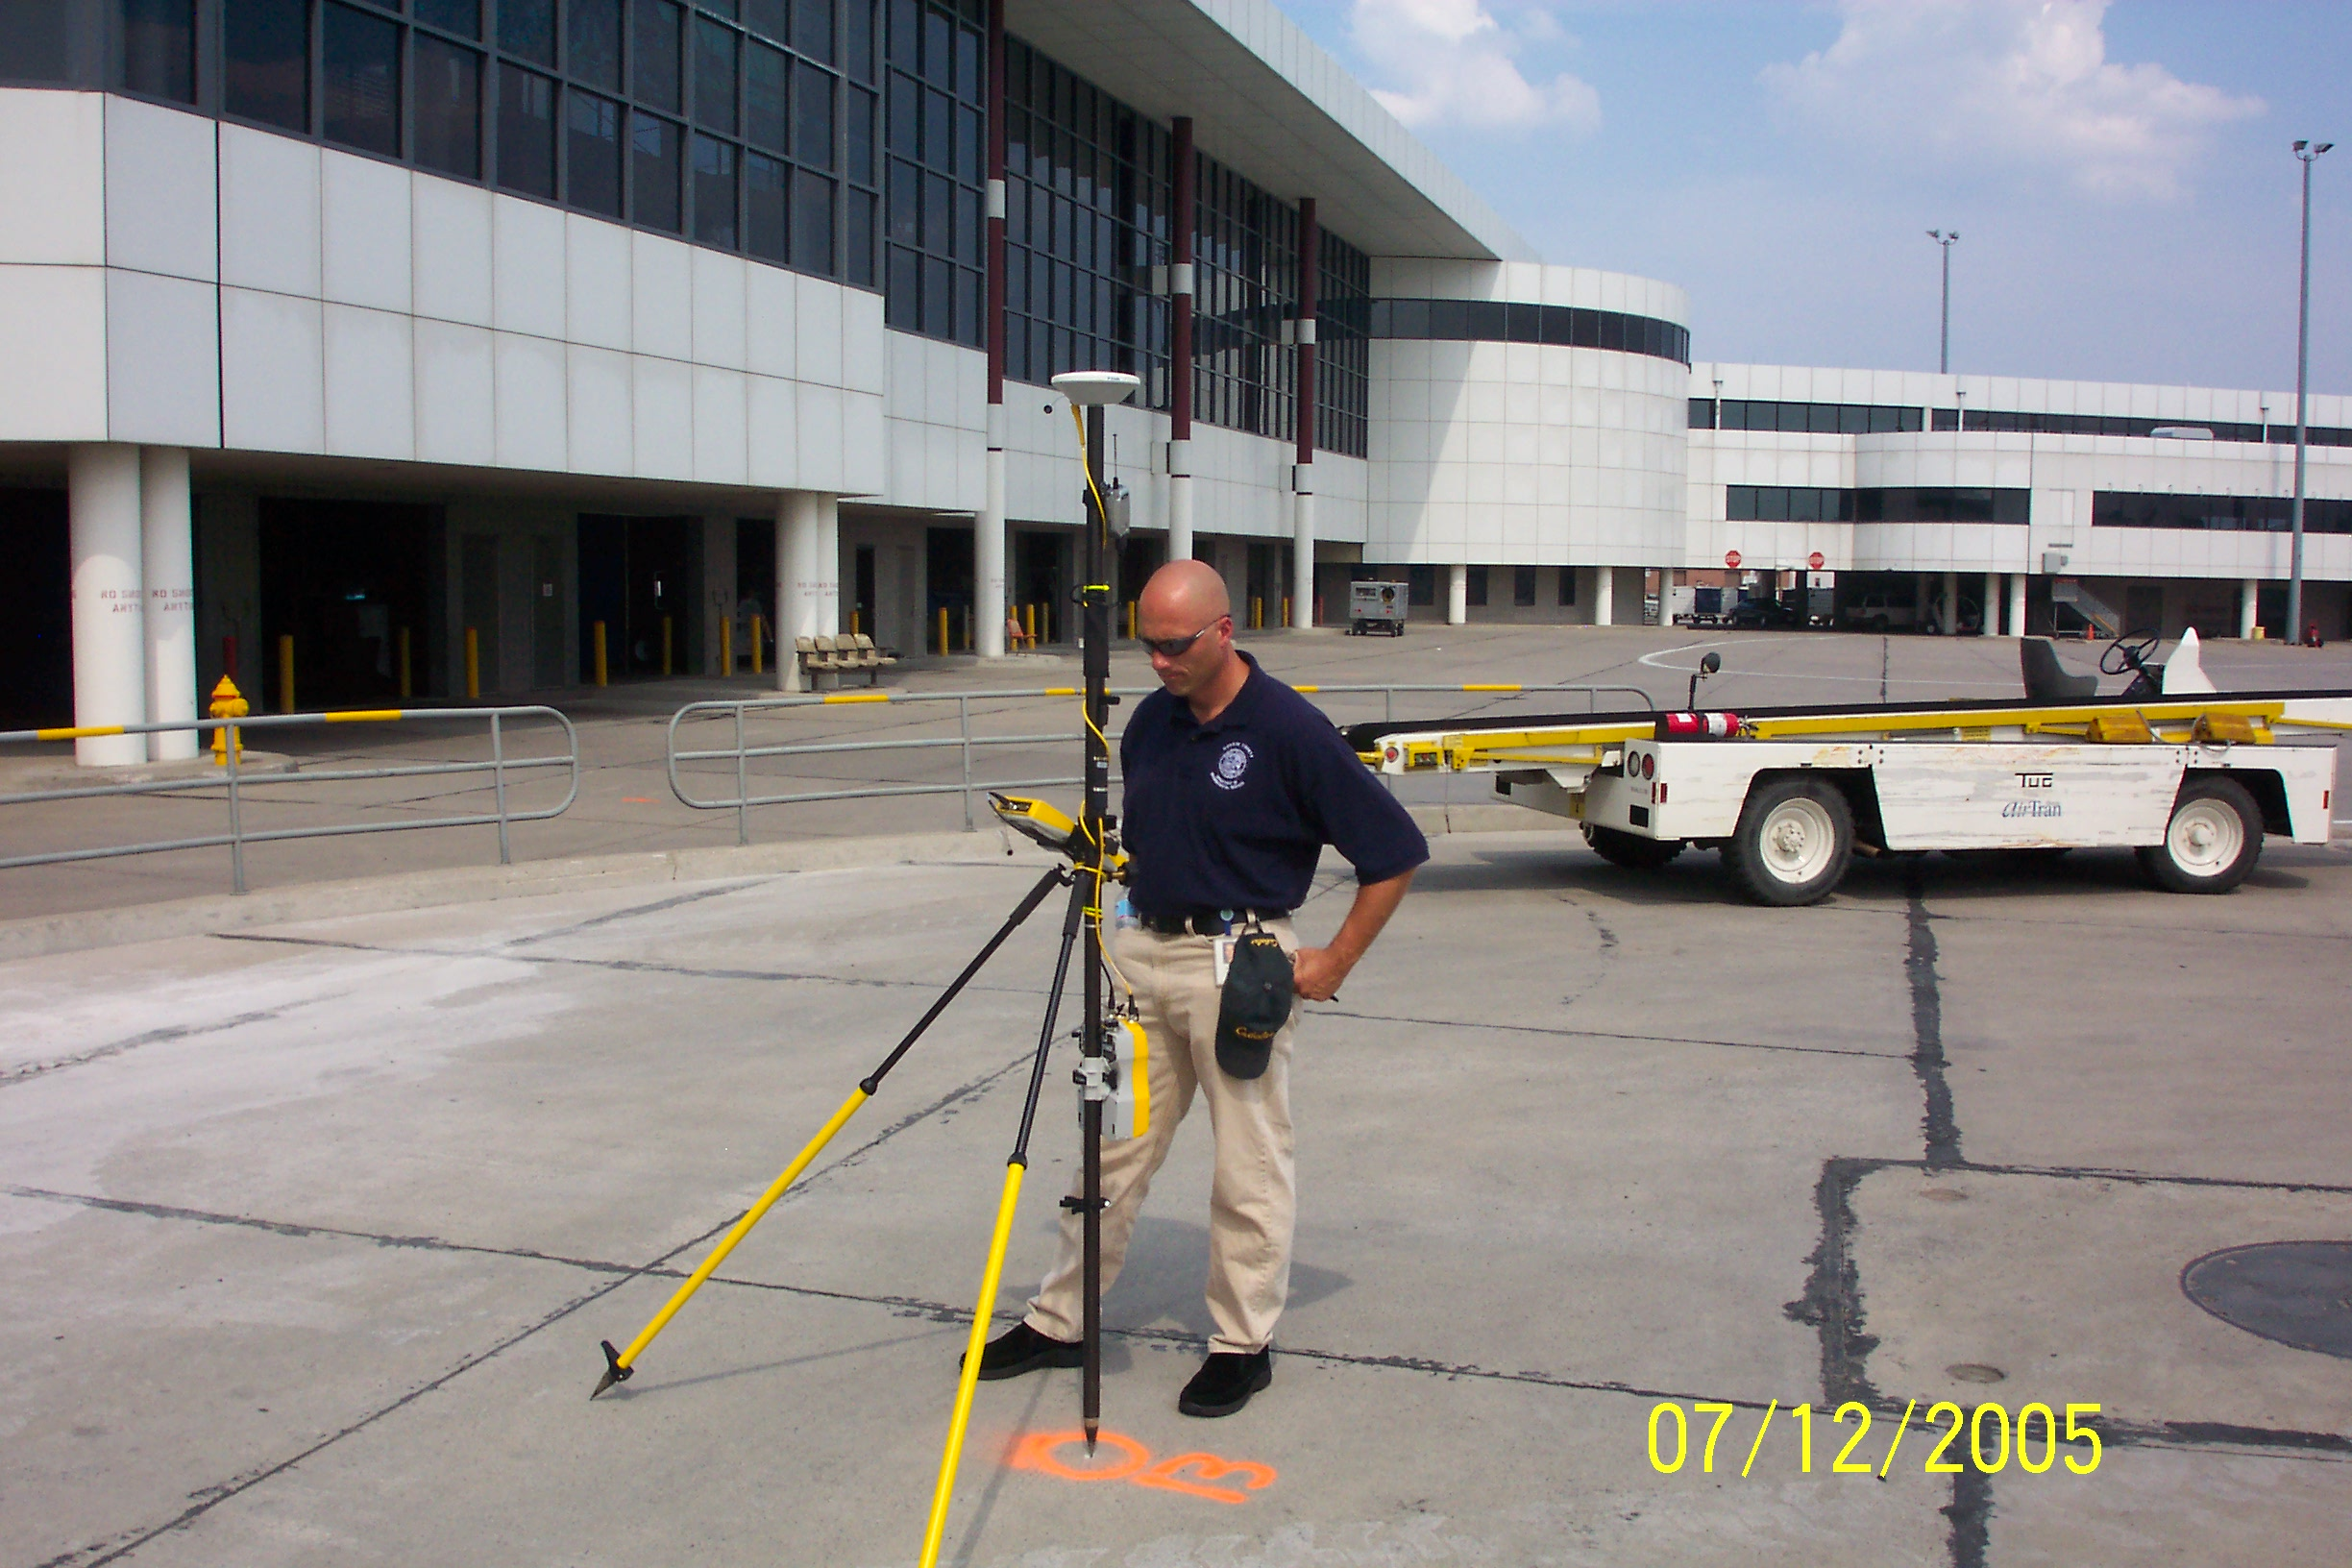 Worker collecting GPS data at the airport using a Trimble R8 high precision unit.